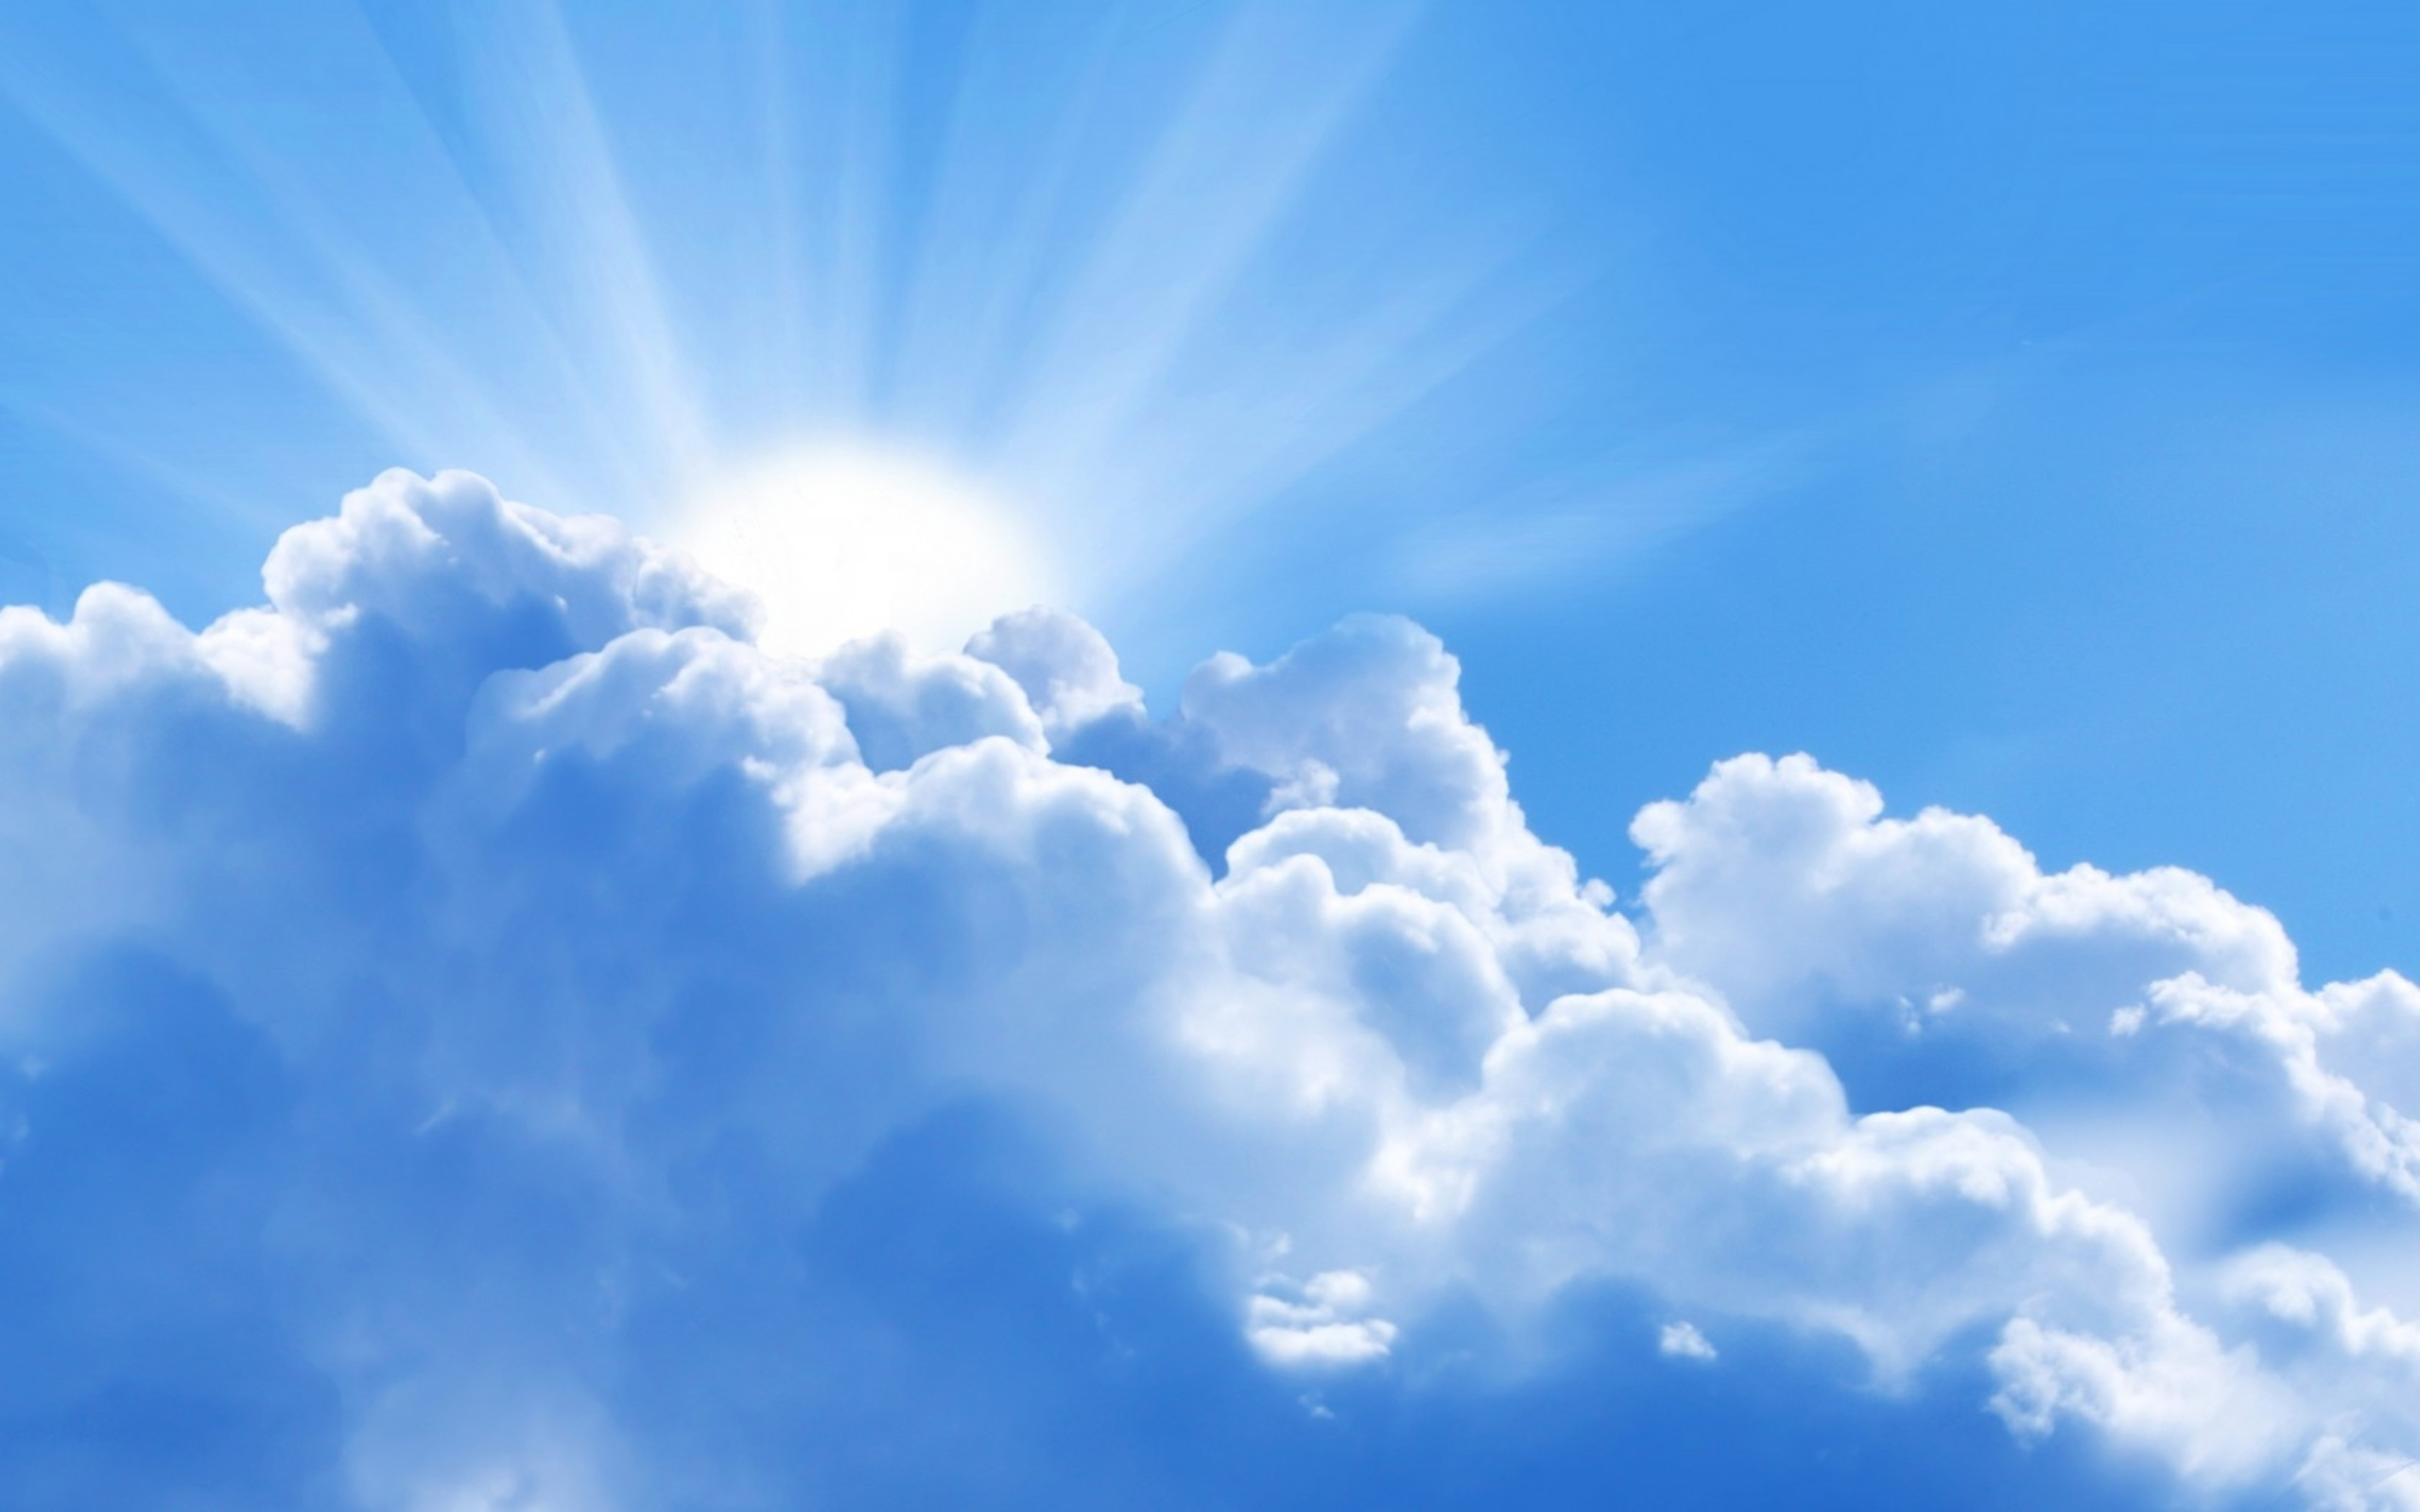 Cloud Wallpaper HD Background Freetopwallpapercom 2560x1600